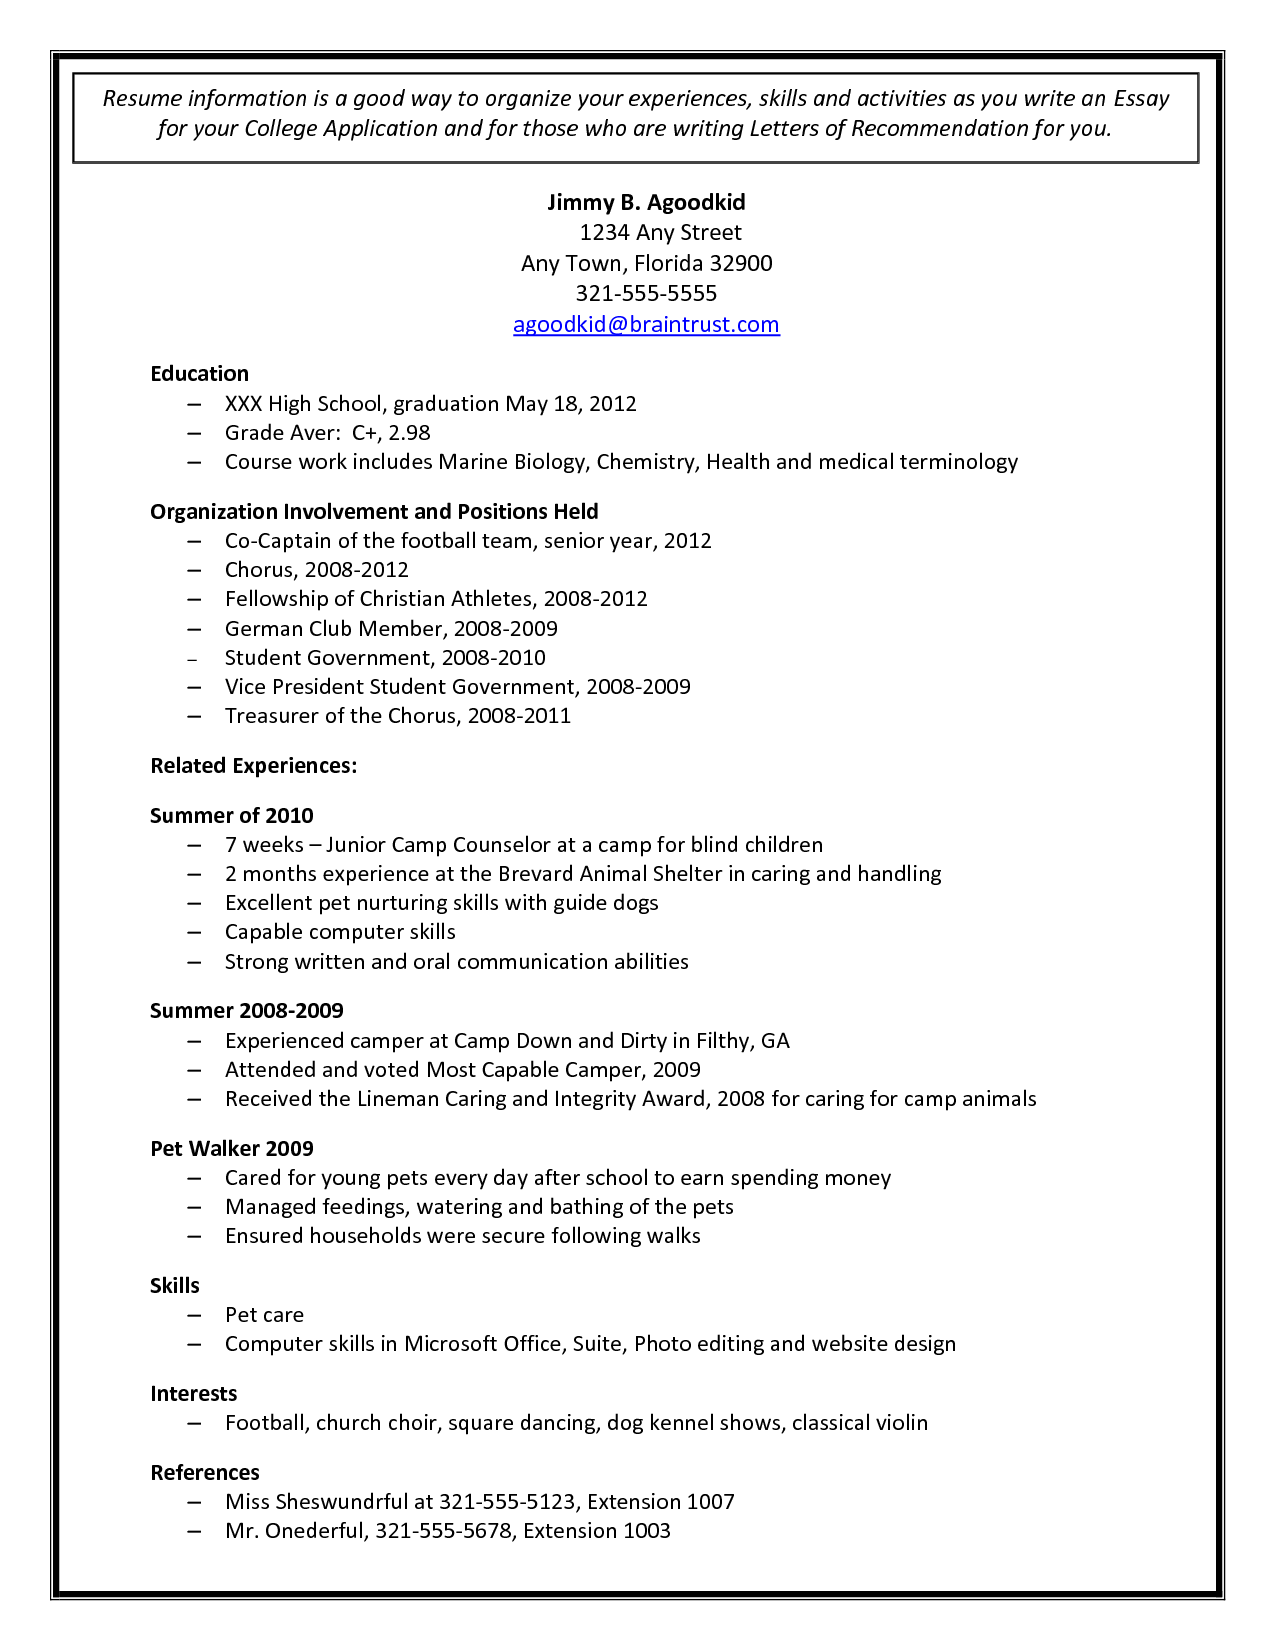 College admissions manager resume